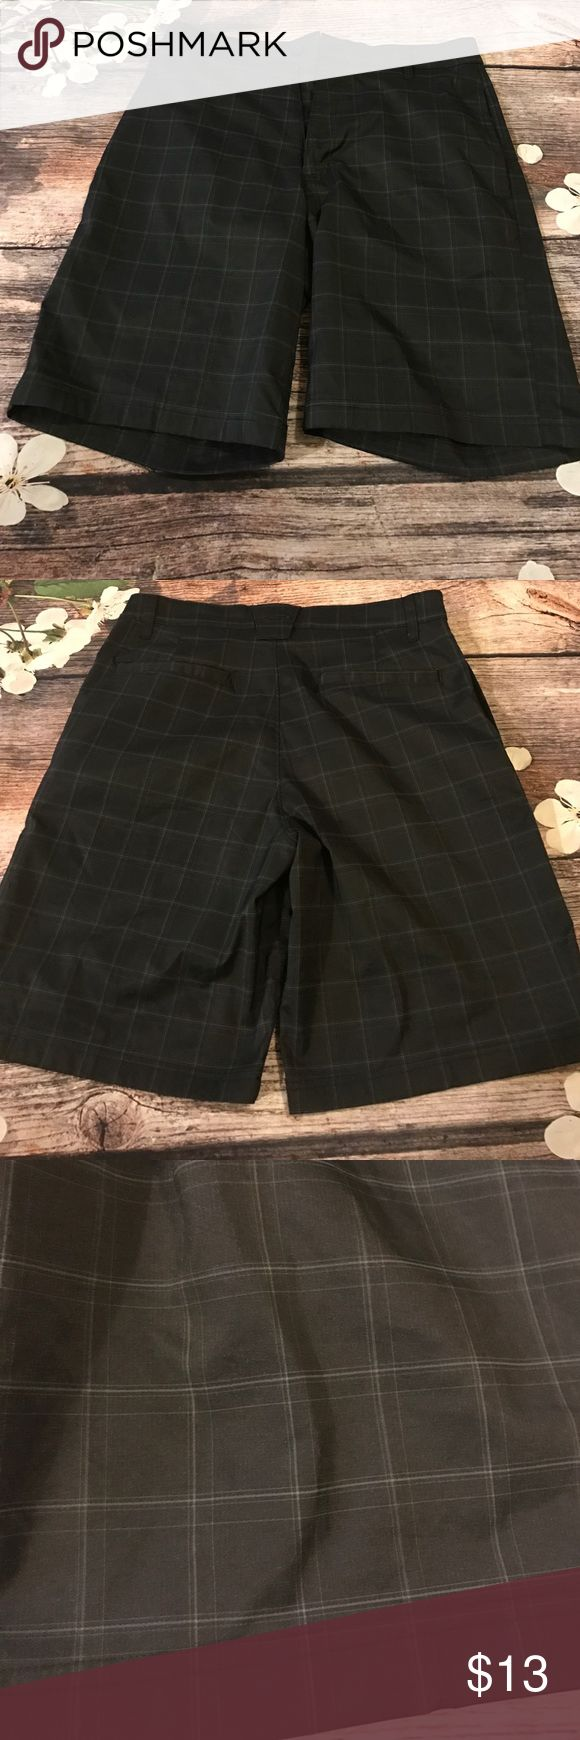 Men's shorts SALE NWOT size 32 duo dry Champion Shorts